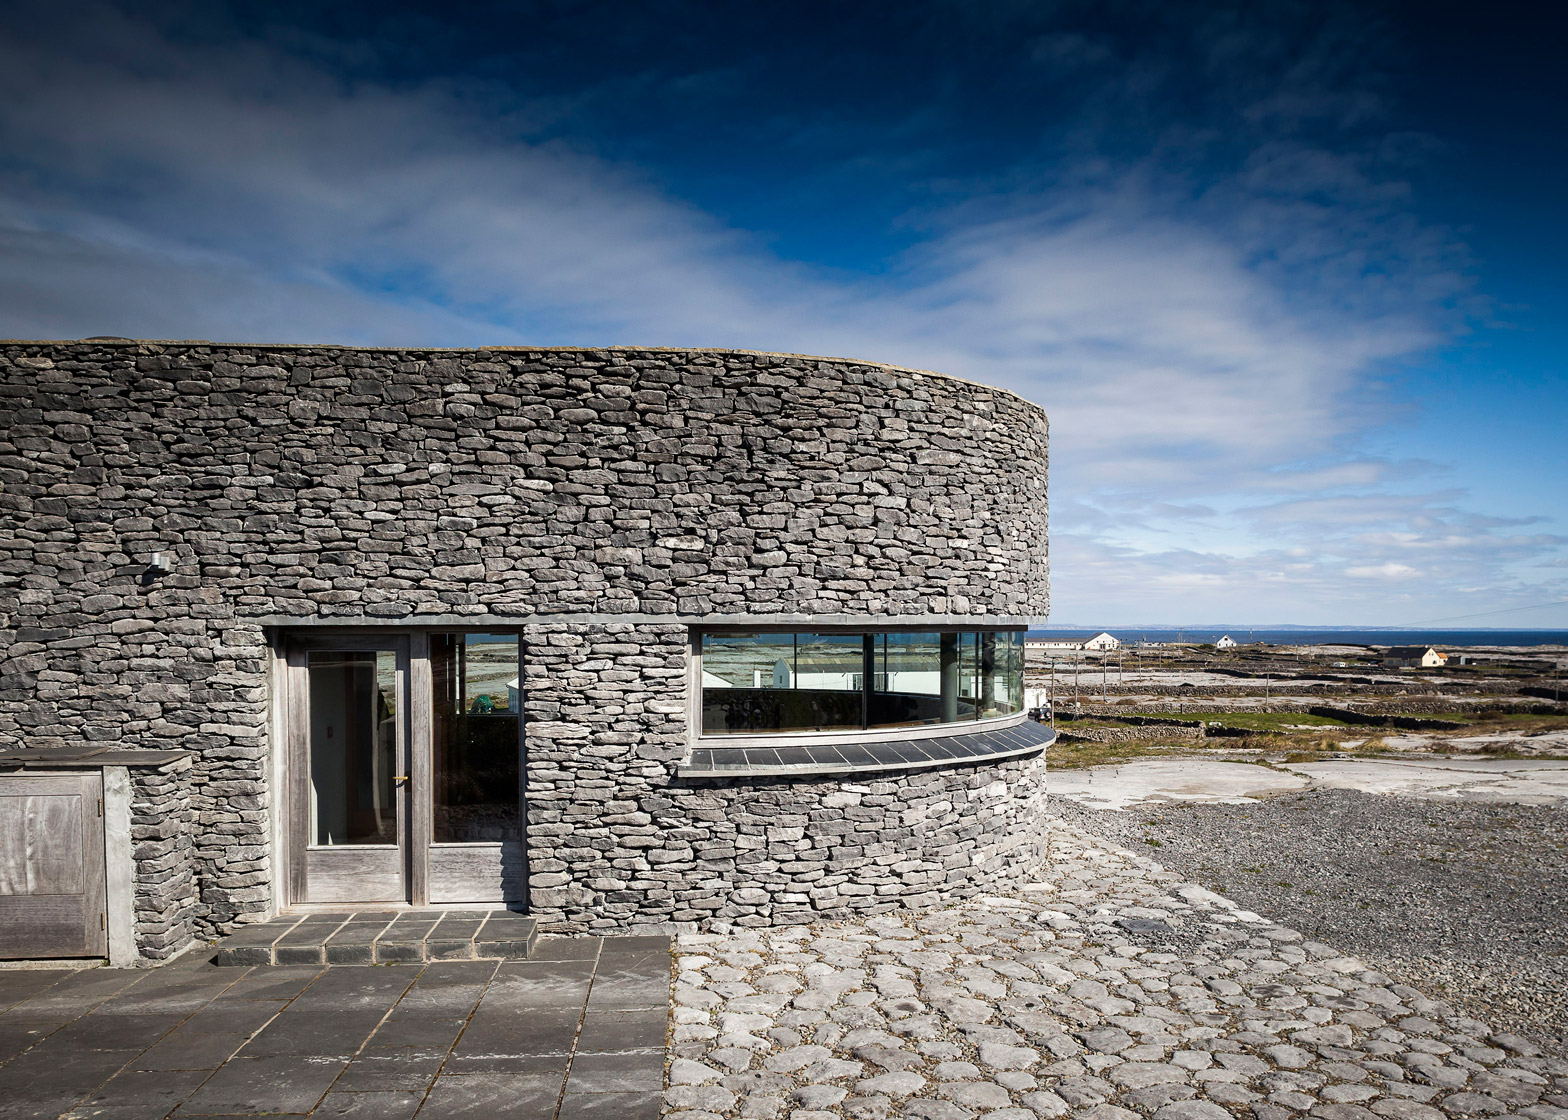 Inis Meáin Restaurant & Suites by Shane de Blacam, de Blacam and Meagher